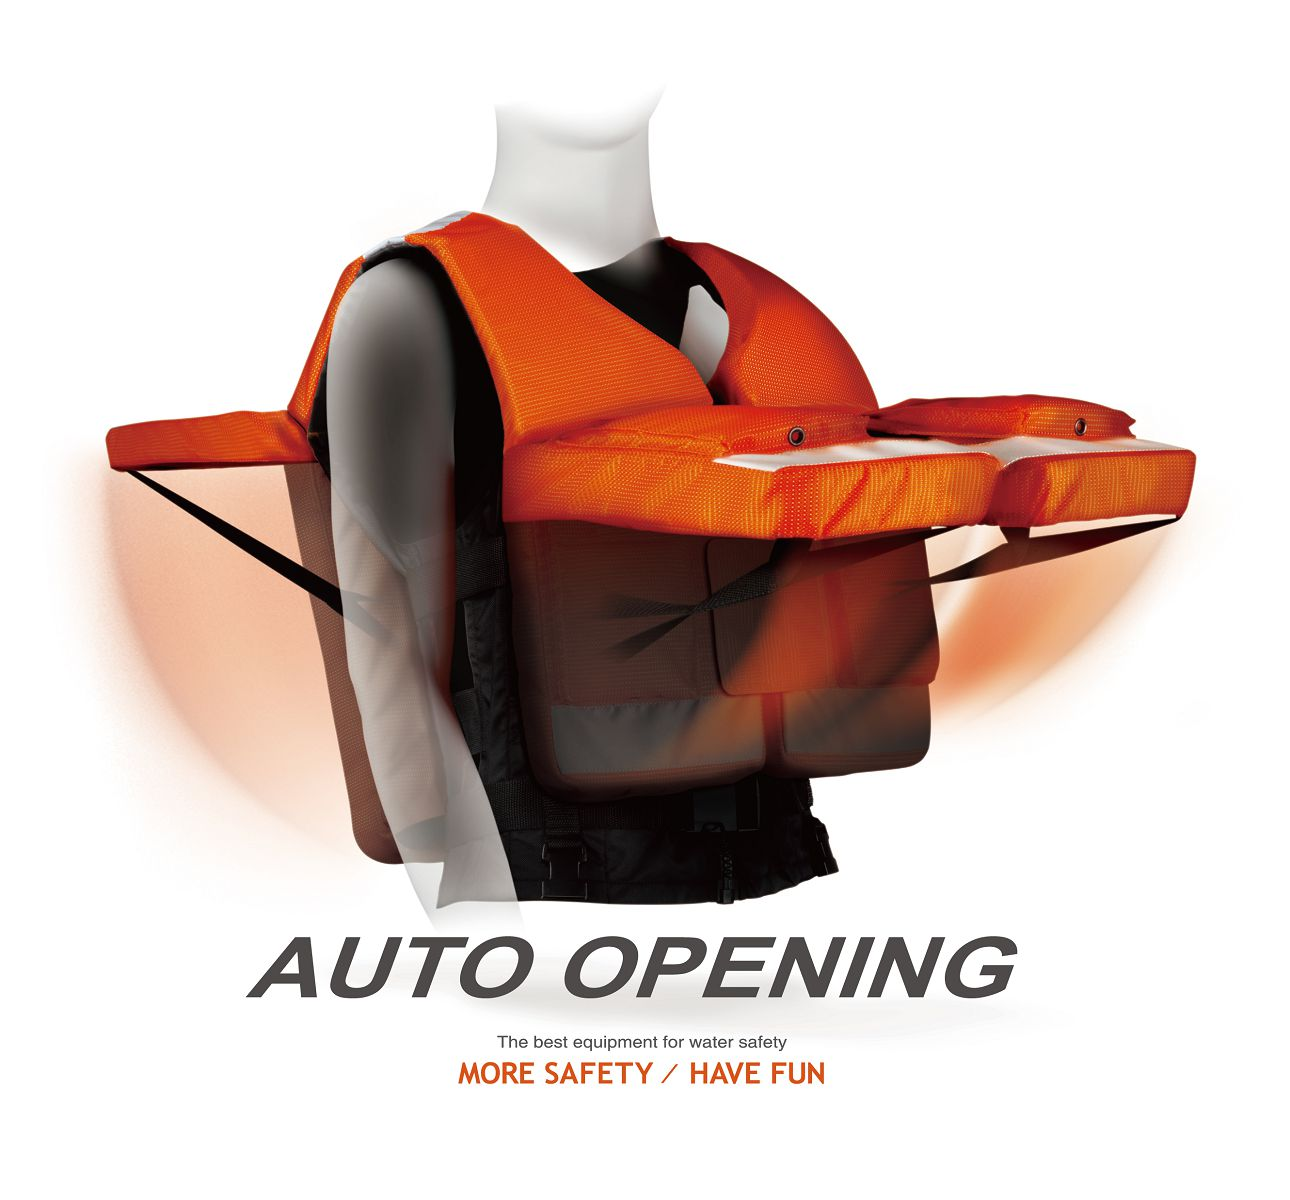 HONO GOLF Enterprise Co., Ltd-Auto Opening Life Jacket